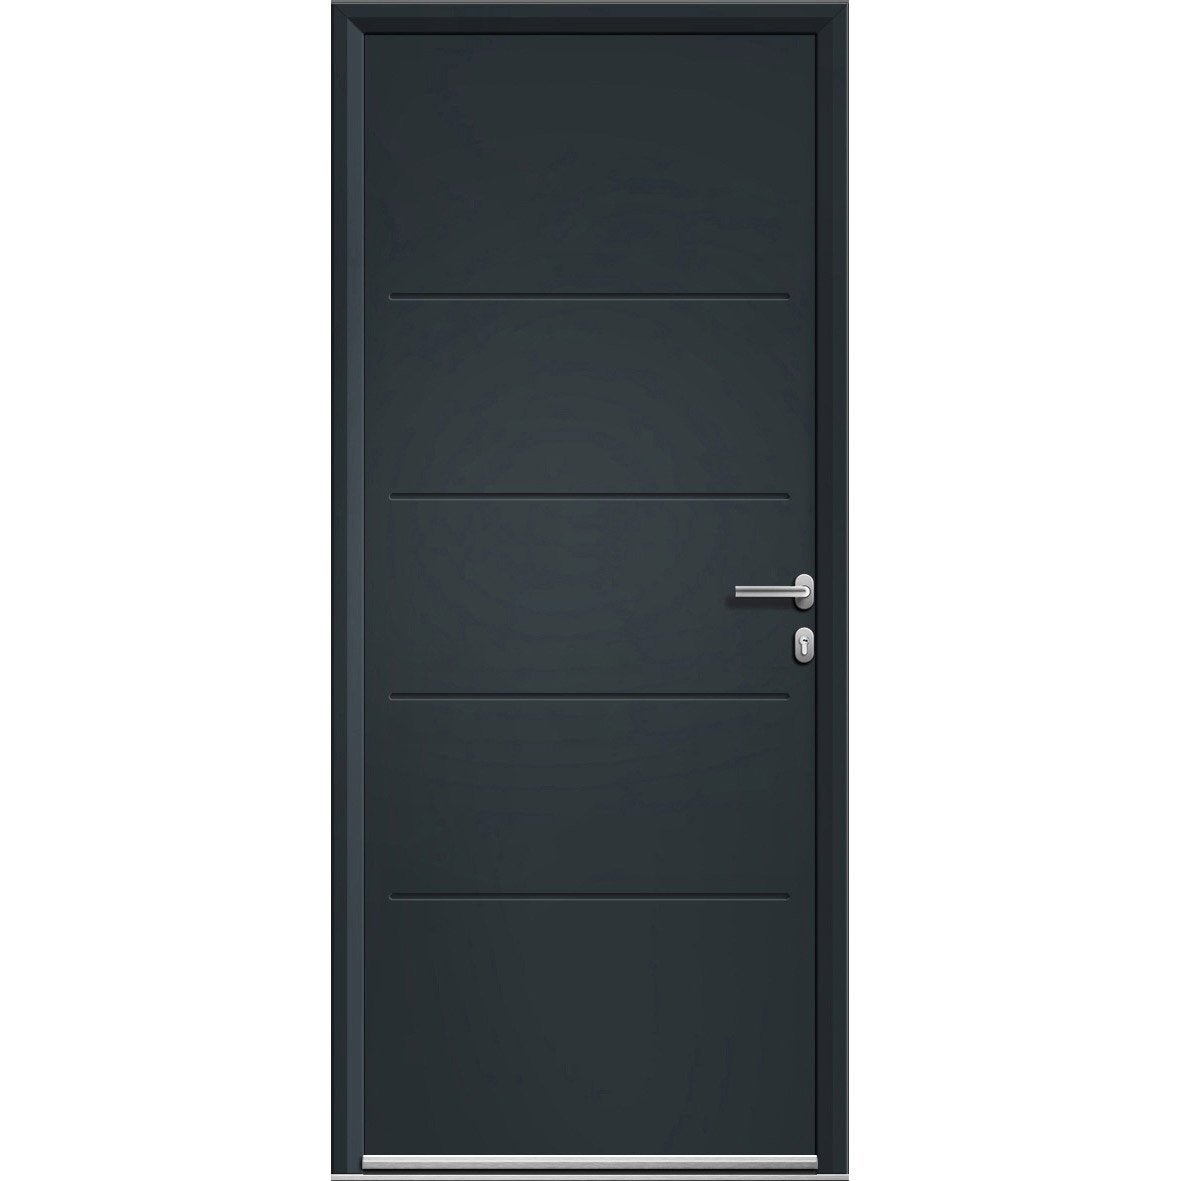 porte de service pvc gris anthracite 20170804054053. Black Bedroom Furniture Sets. Home Design Ideas